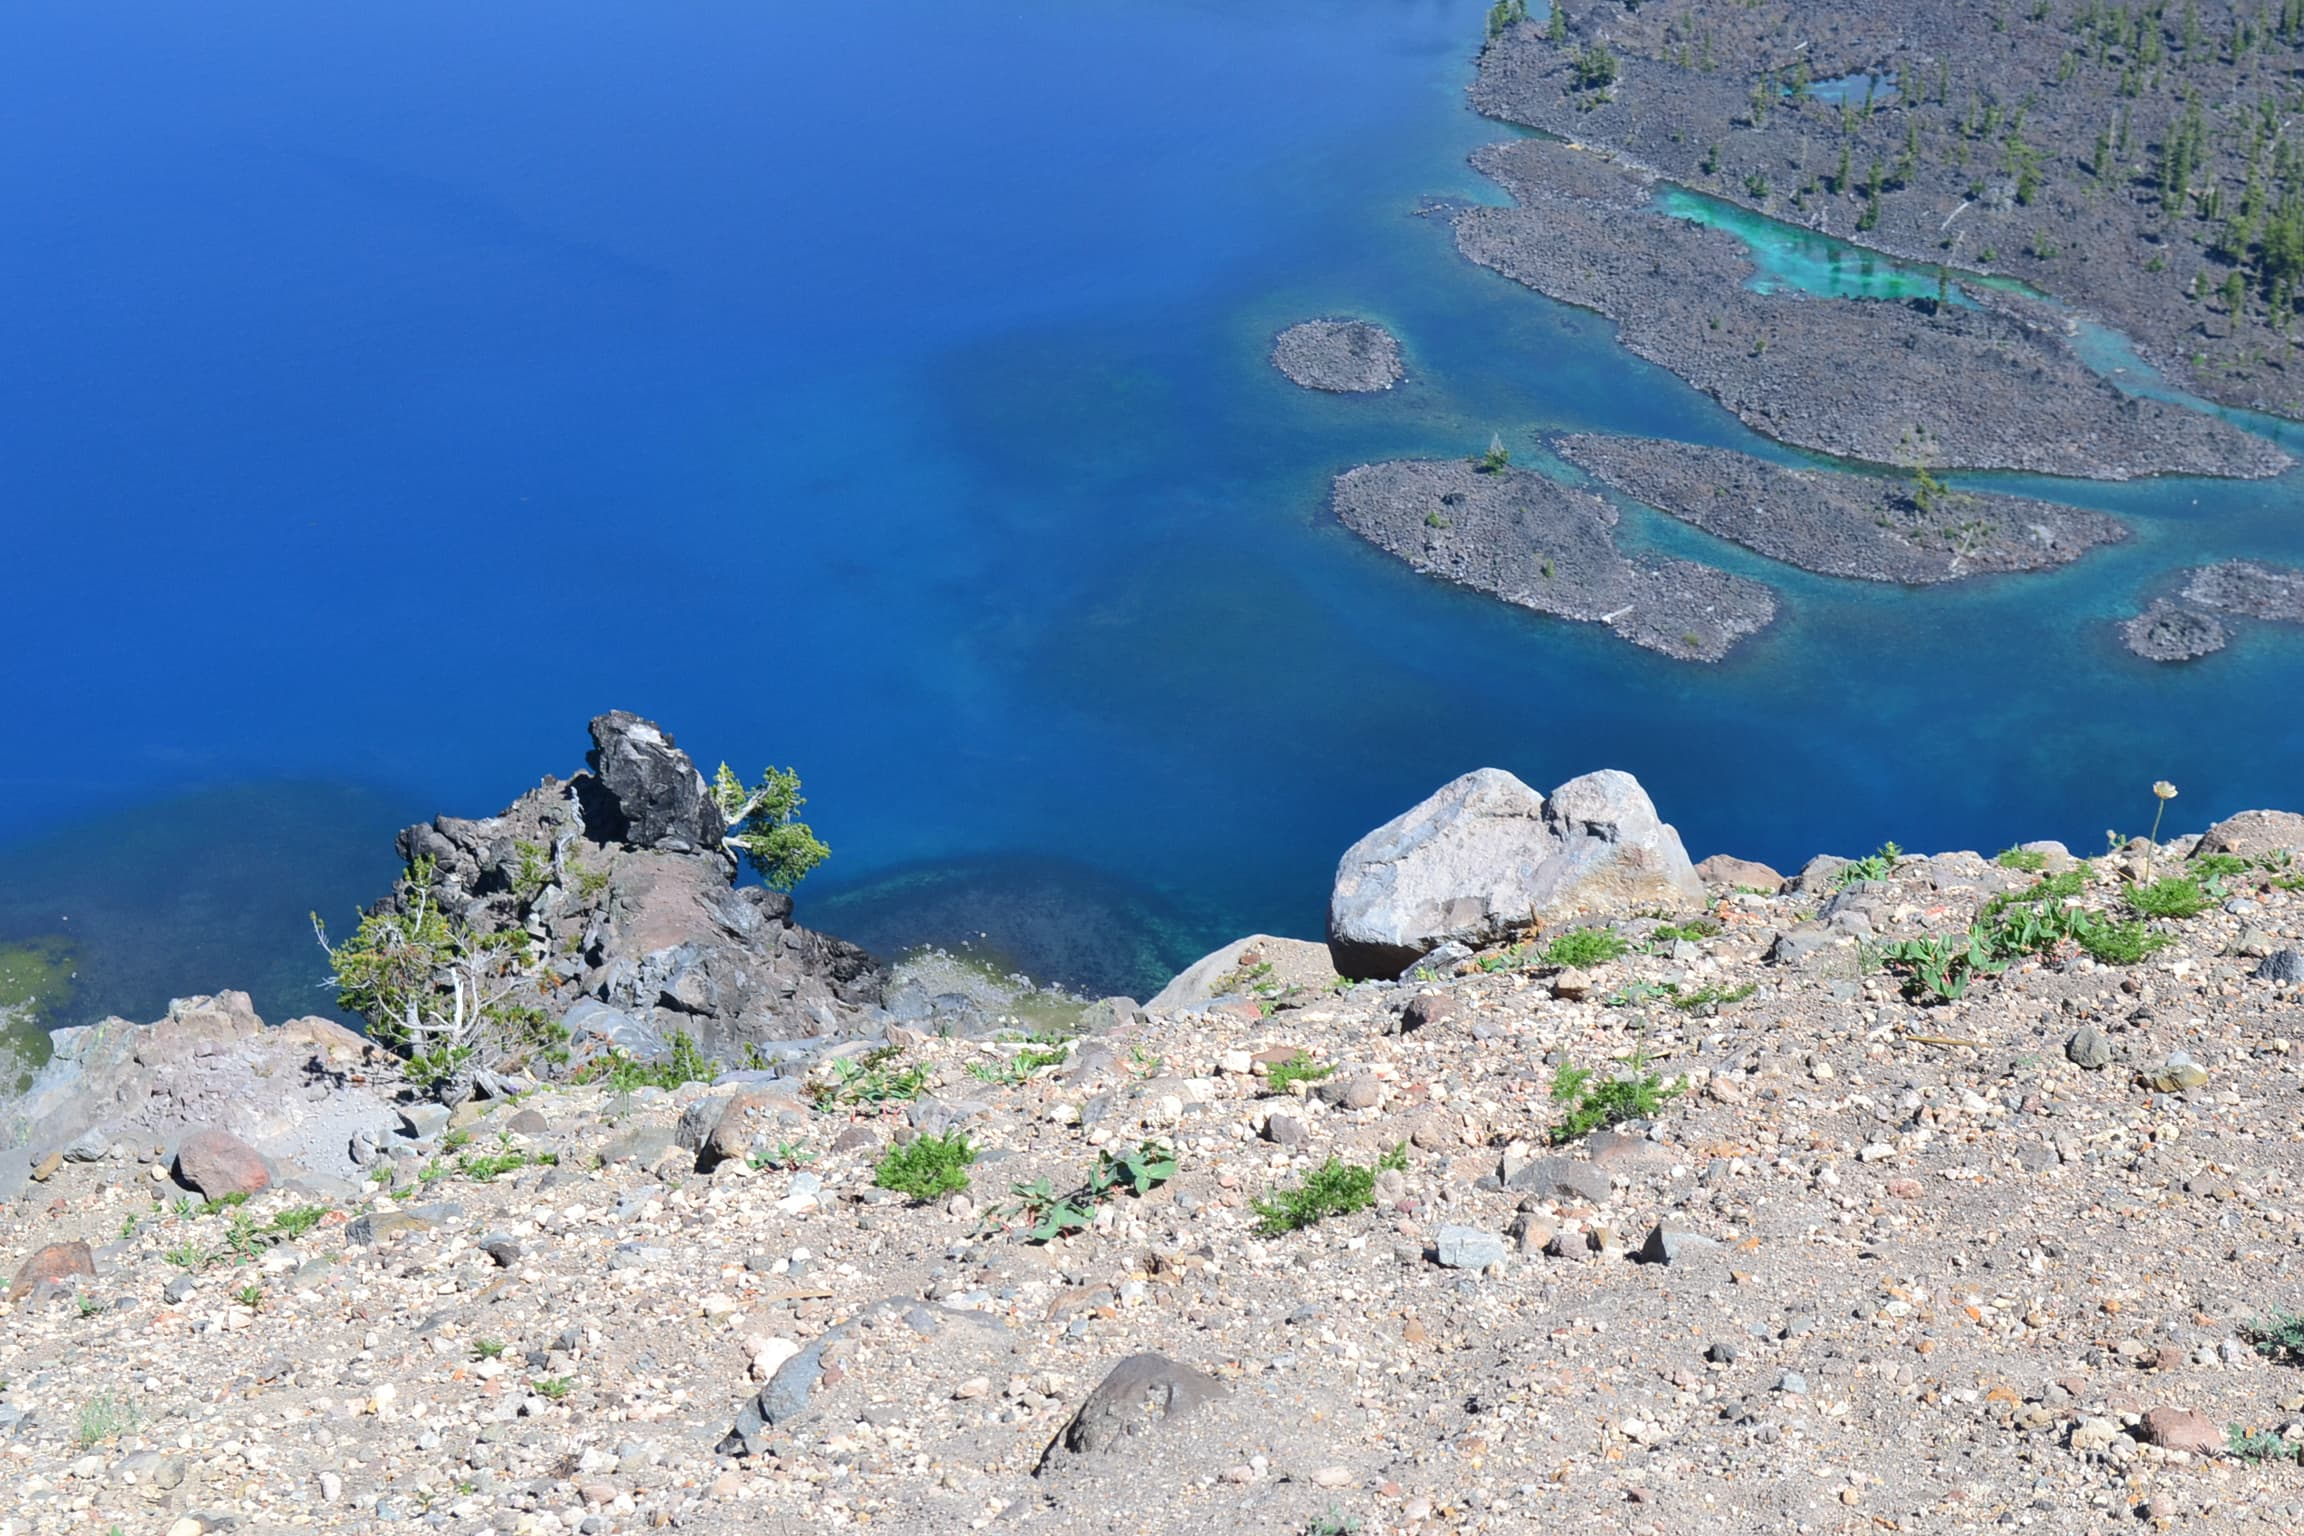 View of down the side of Crater Lake from above.